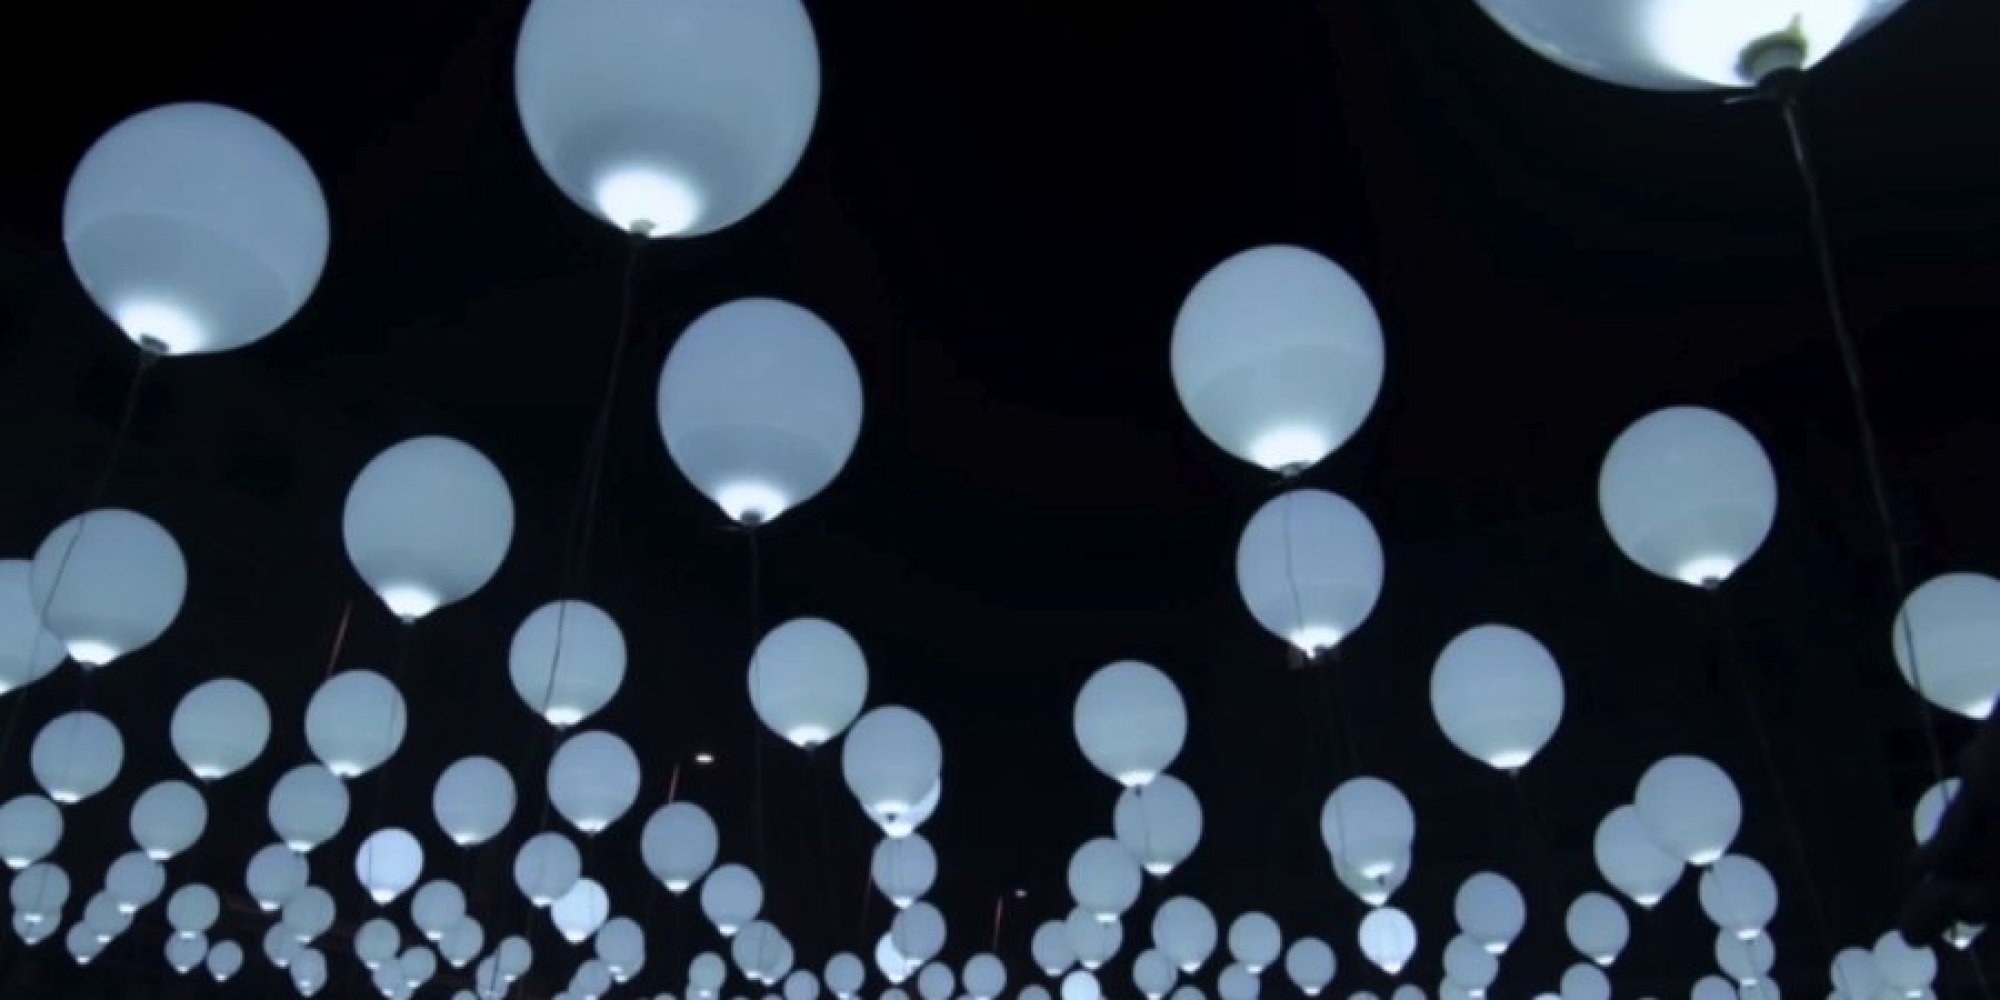 Glow in the dark water balloons - 265 Glowing Balloons Make For A Massive And Mesmerizing Kinetic Sculpture Huffpost